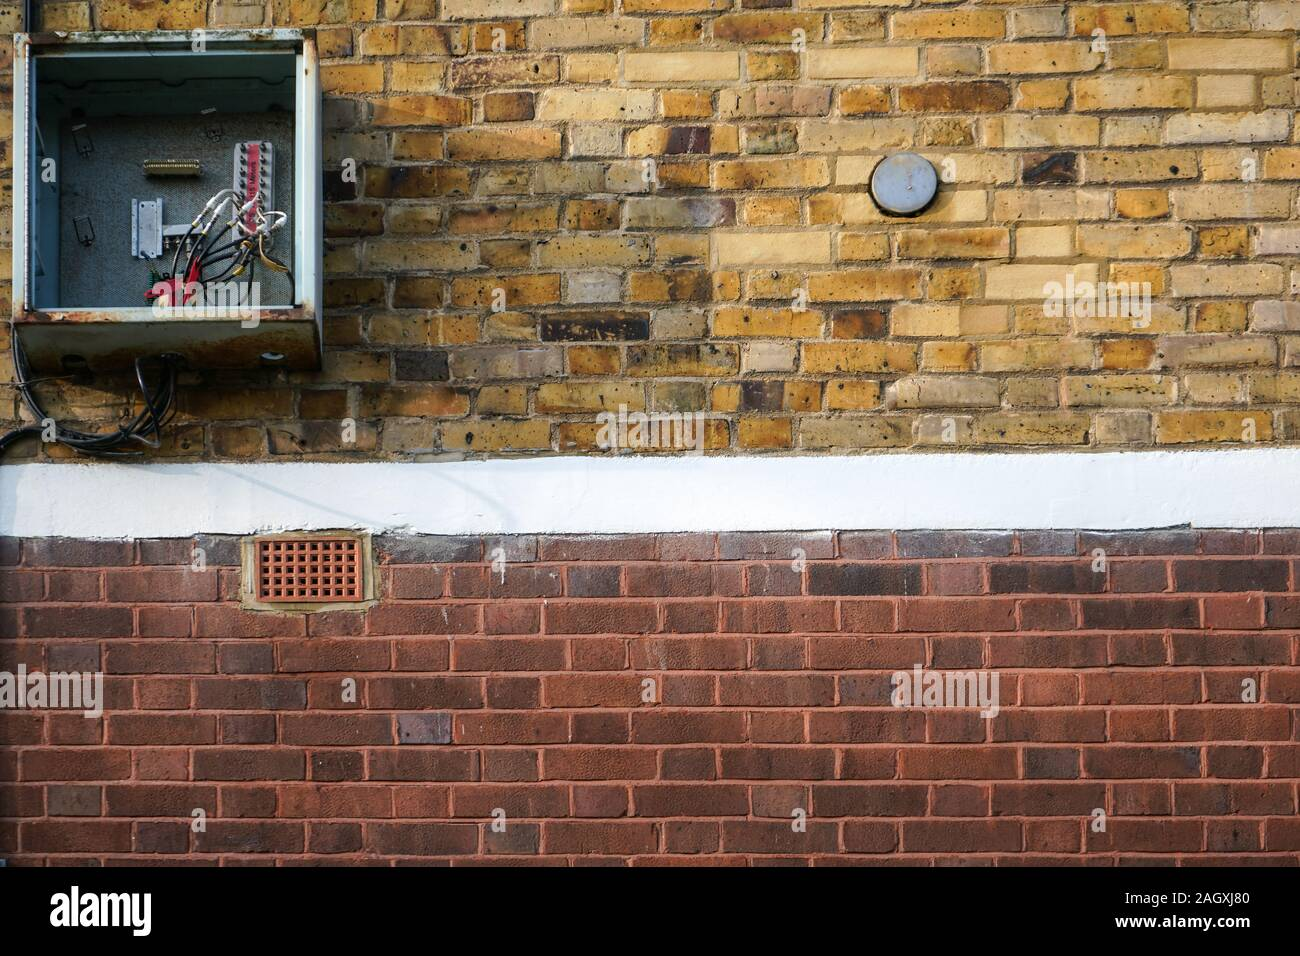 Bricks wall, with electricity / fuse box on it, opened, cover missing, cables visible. Stock Photo